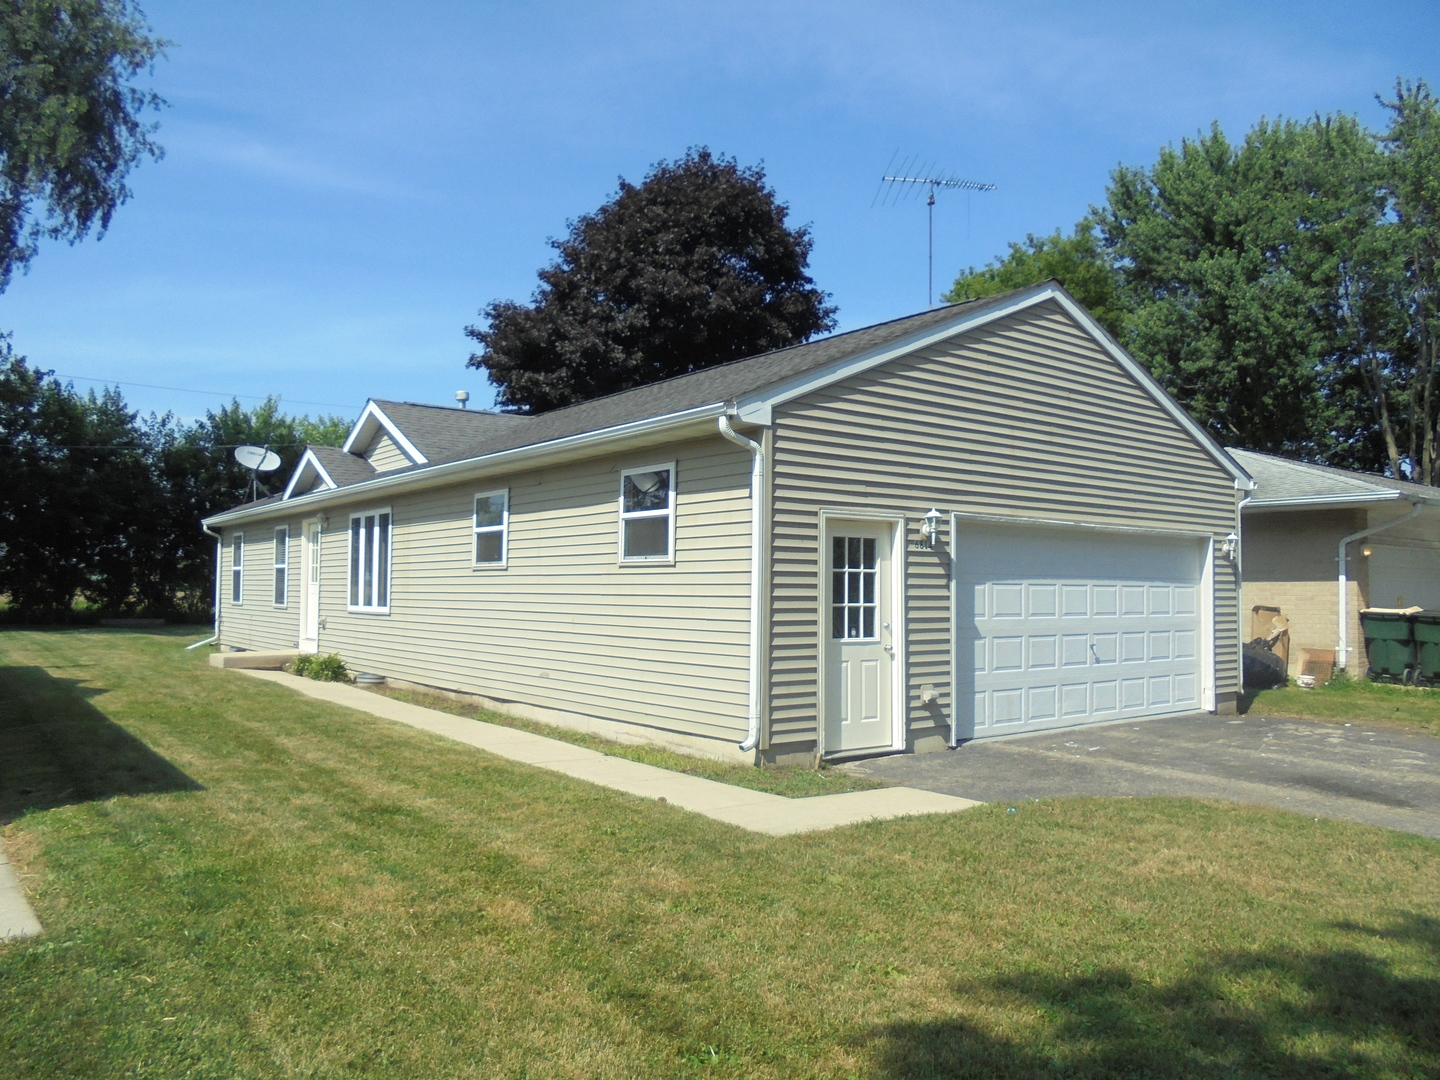 wonder lake single men Mls# 10015876 — this 2 bedroom, 1 bathroom single family for sale is located at 7621 north dr, wonder lake, il 60097 view 16 photos, price history and more on century21com.